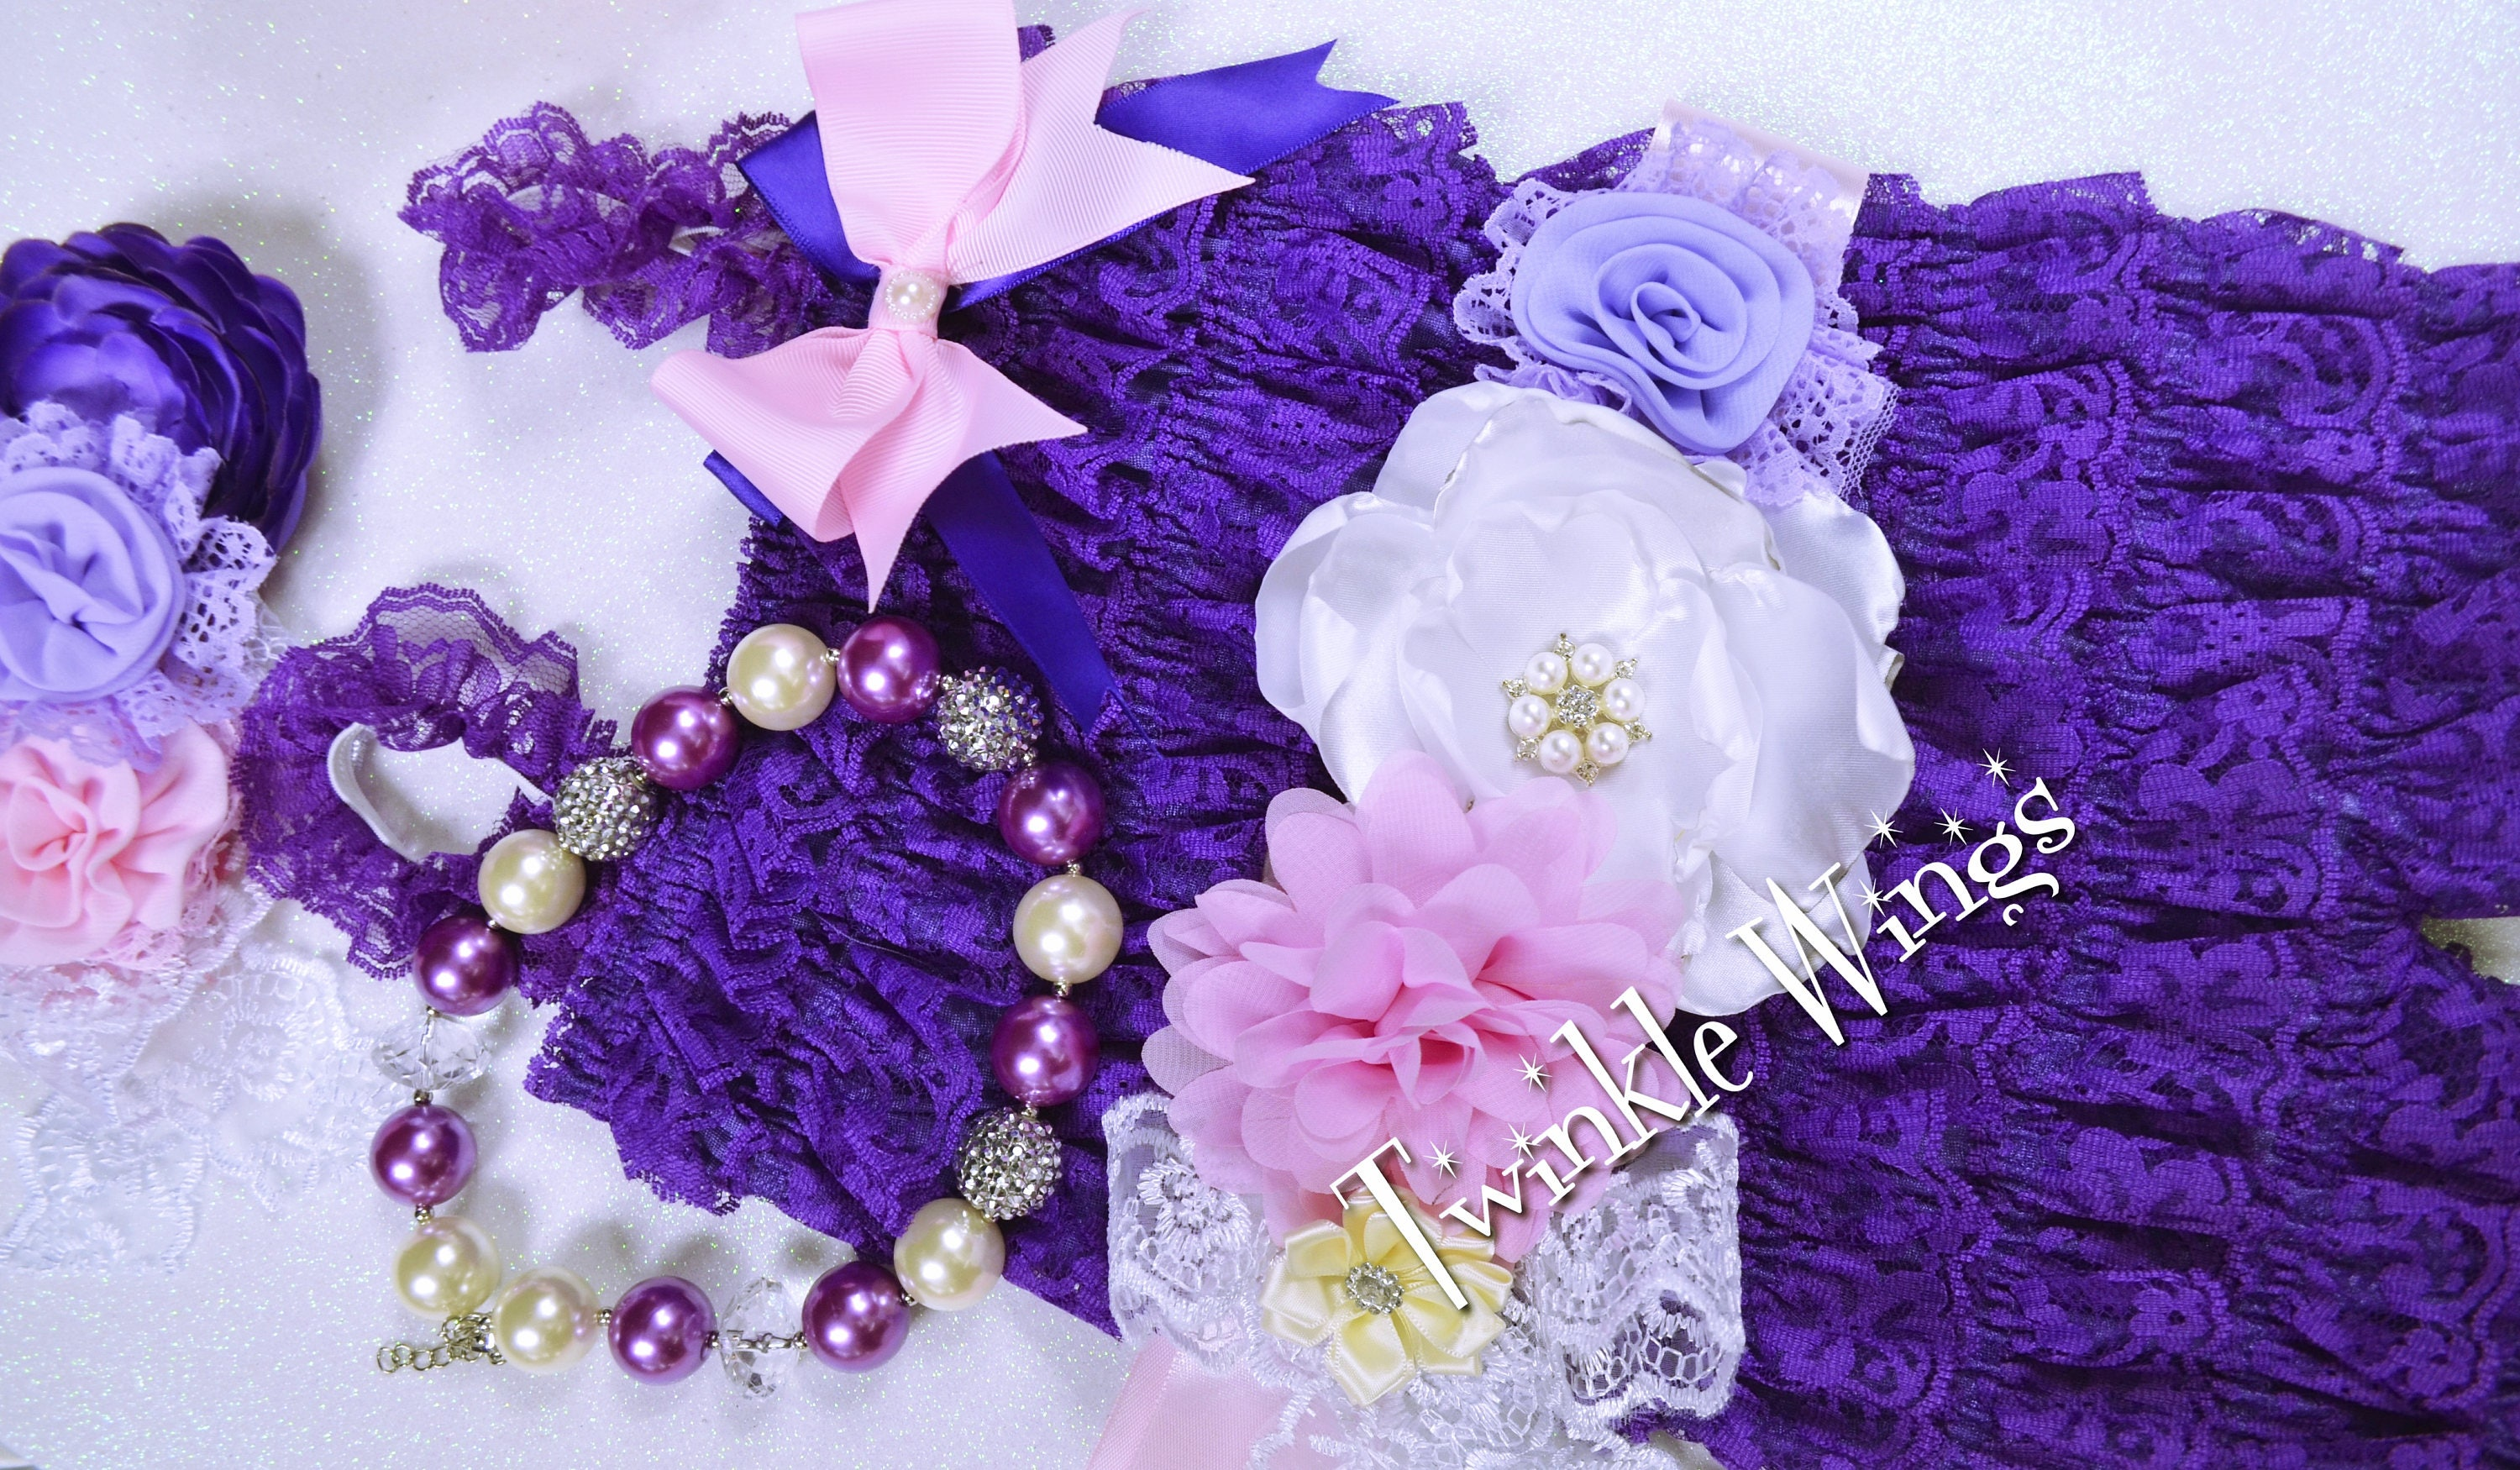 b0e5379c9a48 Baby Romper and headband 2 or 3 pc SET Purple Cake Smash Outfit Baby ...